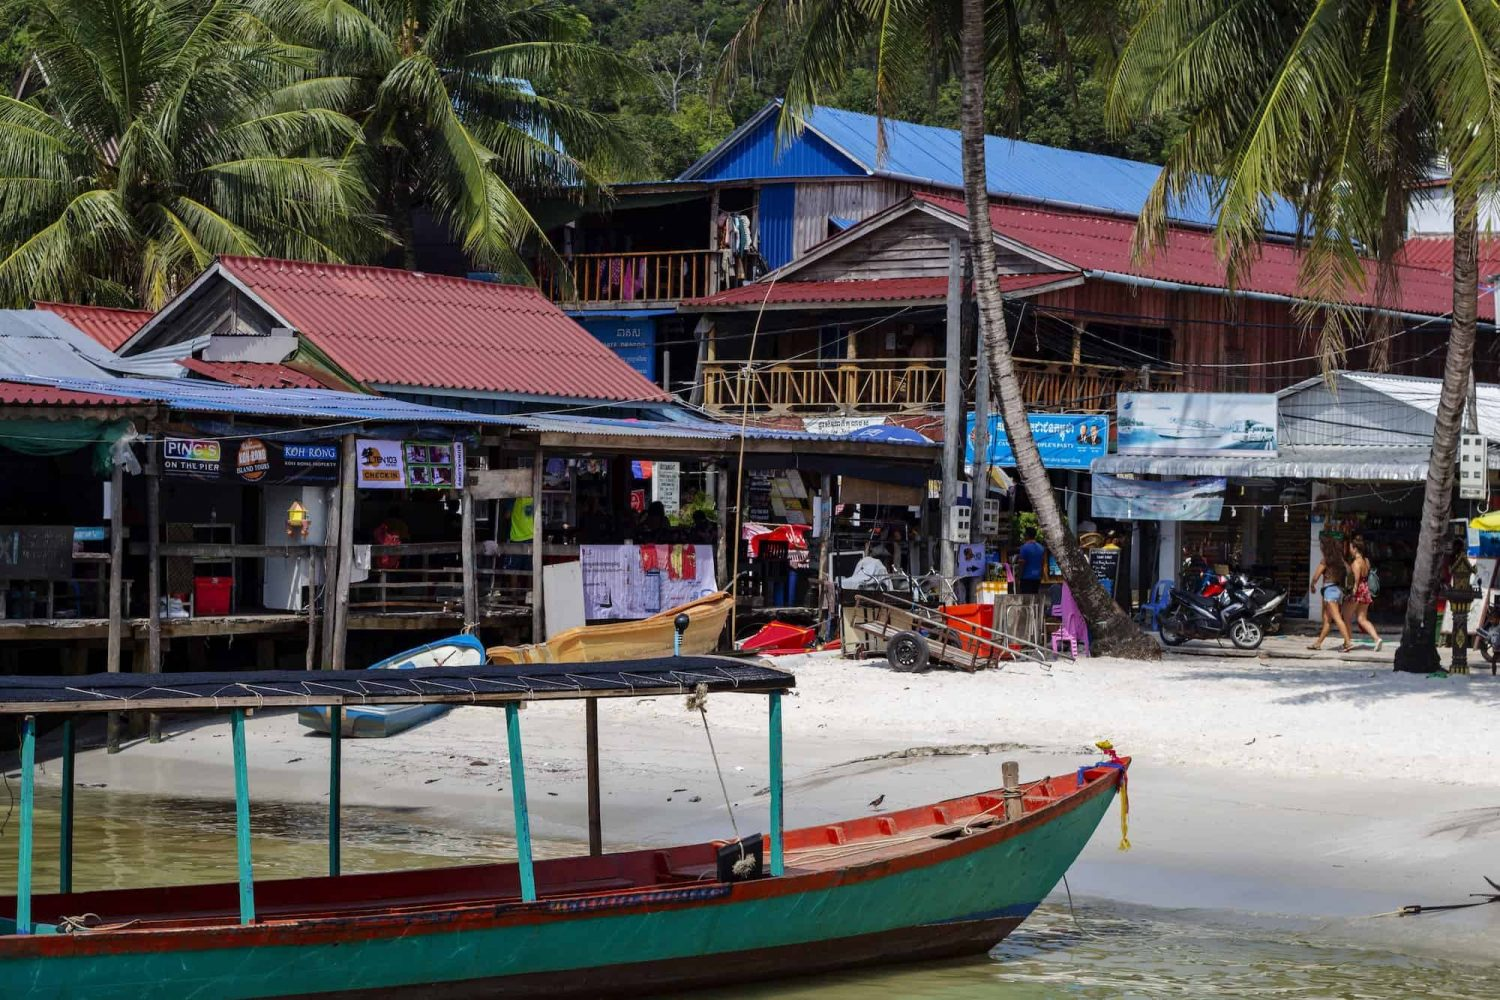 Koh Rong Island, Cambodia - April 7, 2018: View Of Seaside Village With Restaurants And Beach.